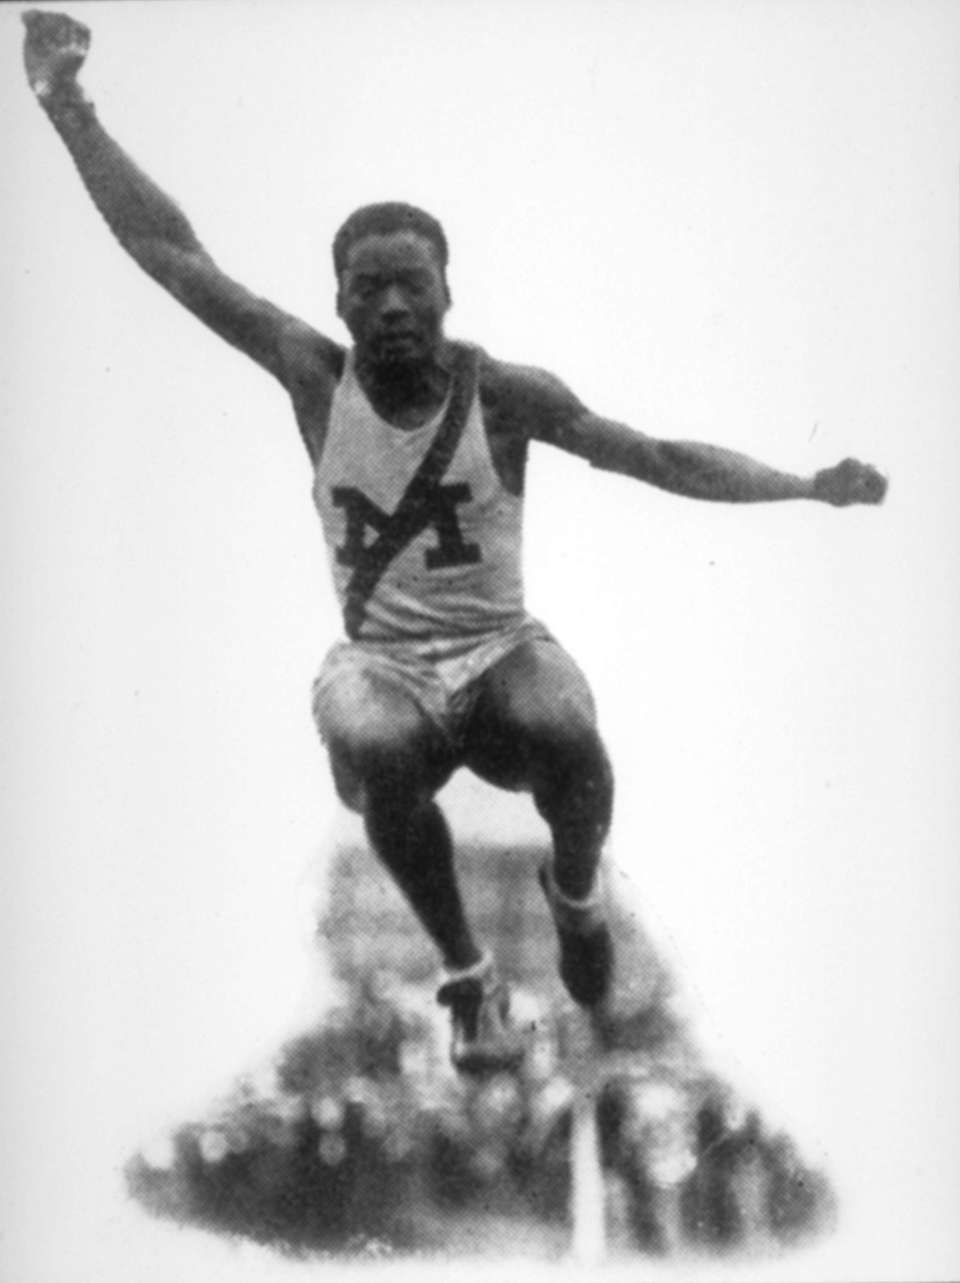 DEHART HUBBARD Olympics In the 1924 Olympic Games